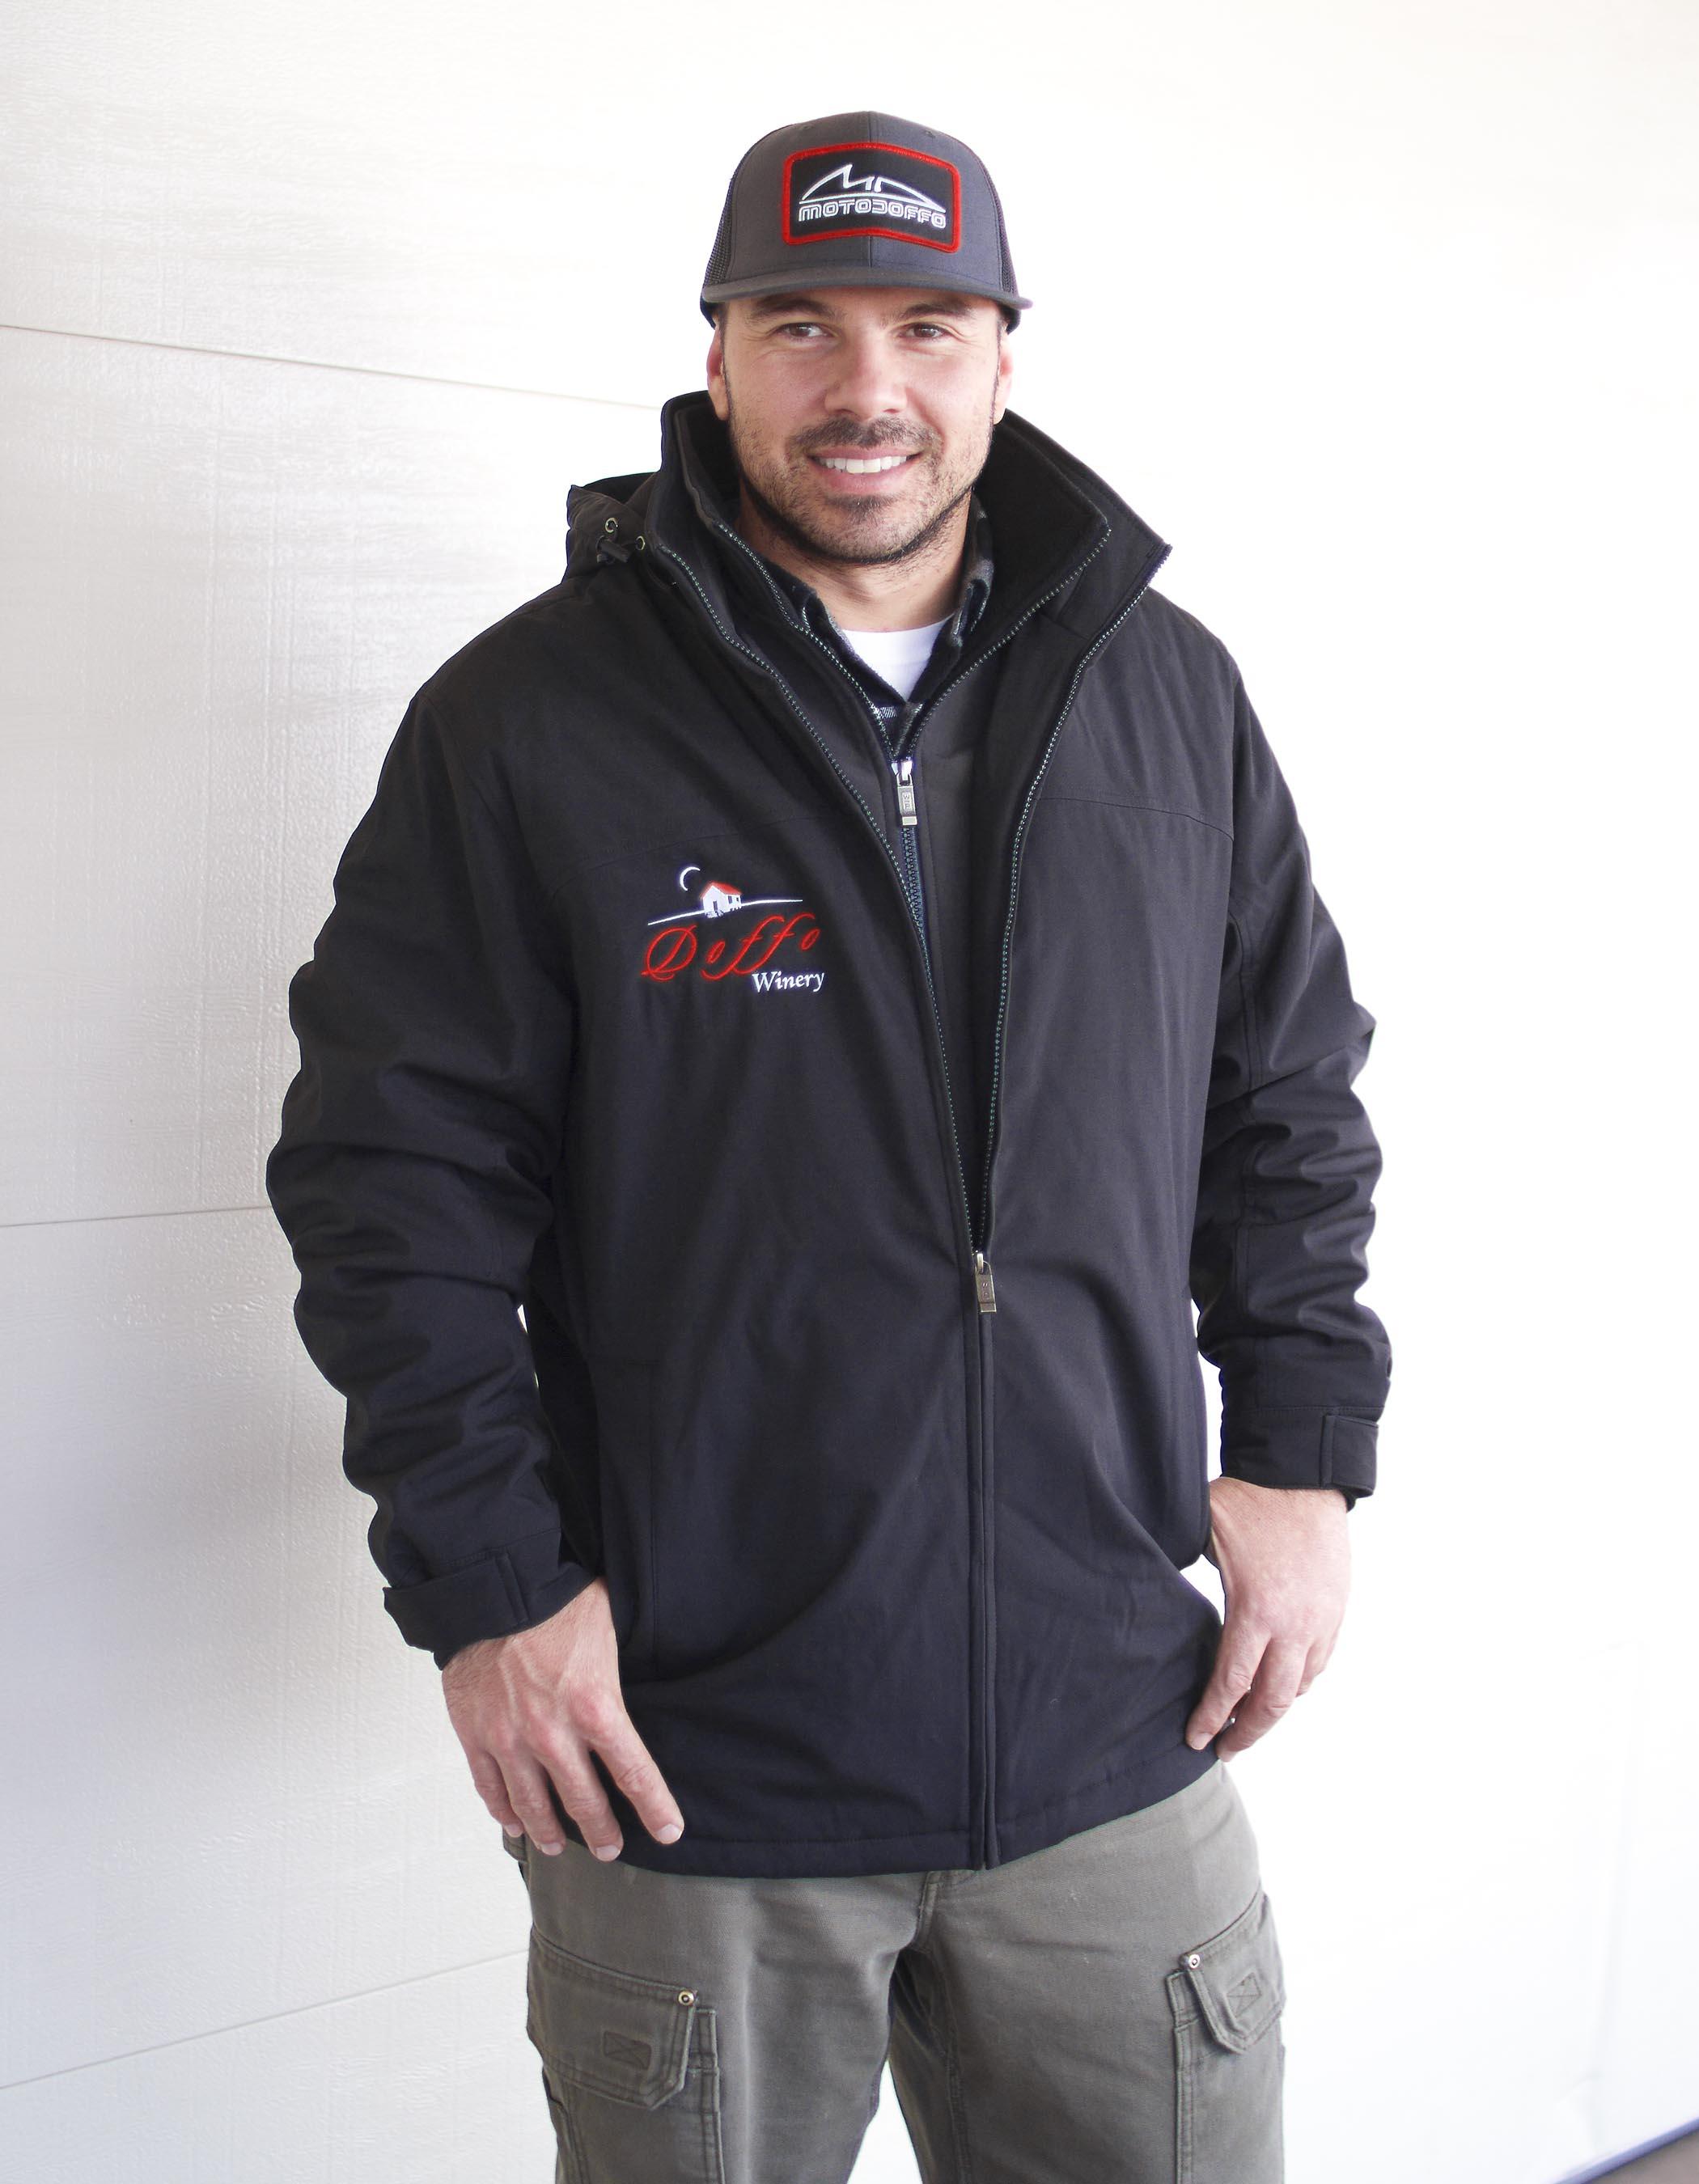 Doffo Weatherproof Jacket